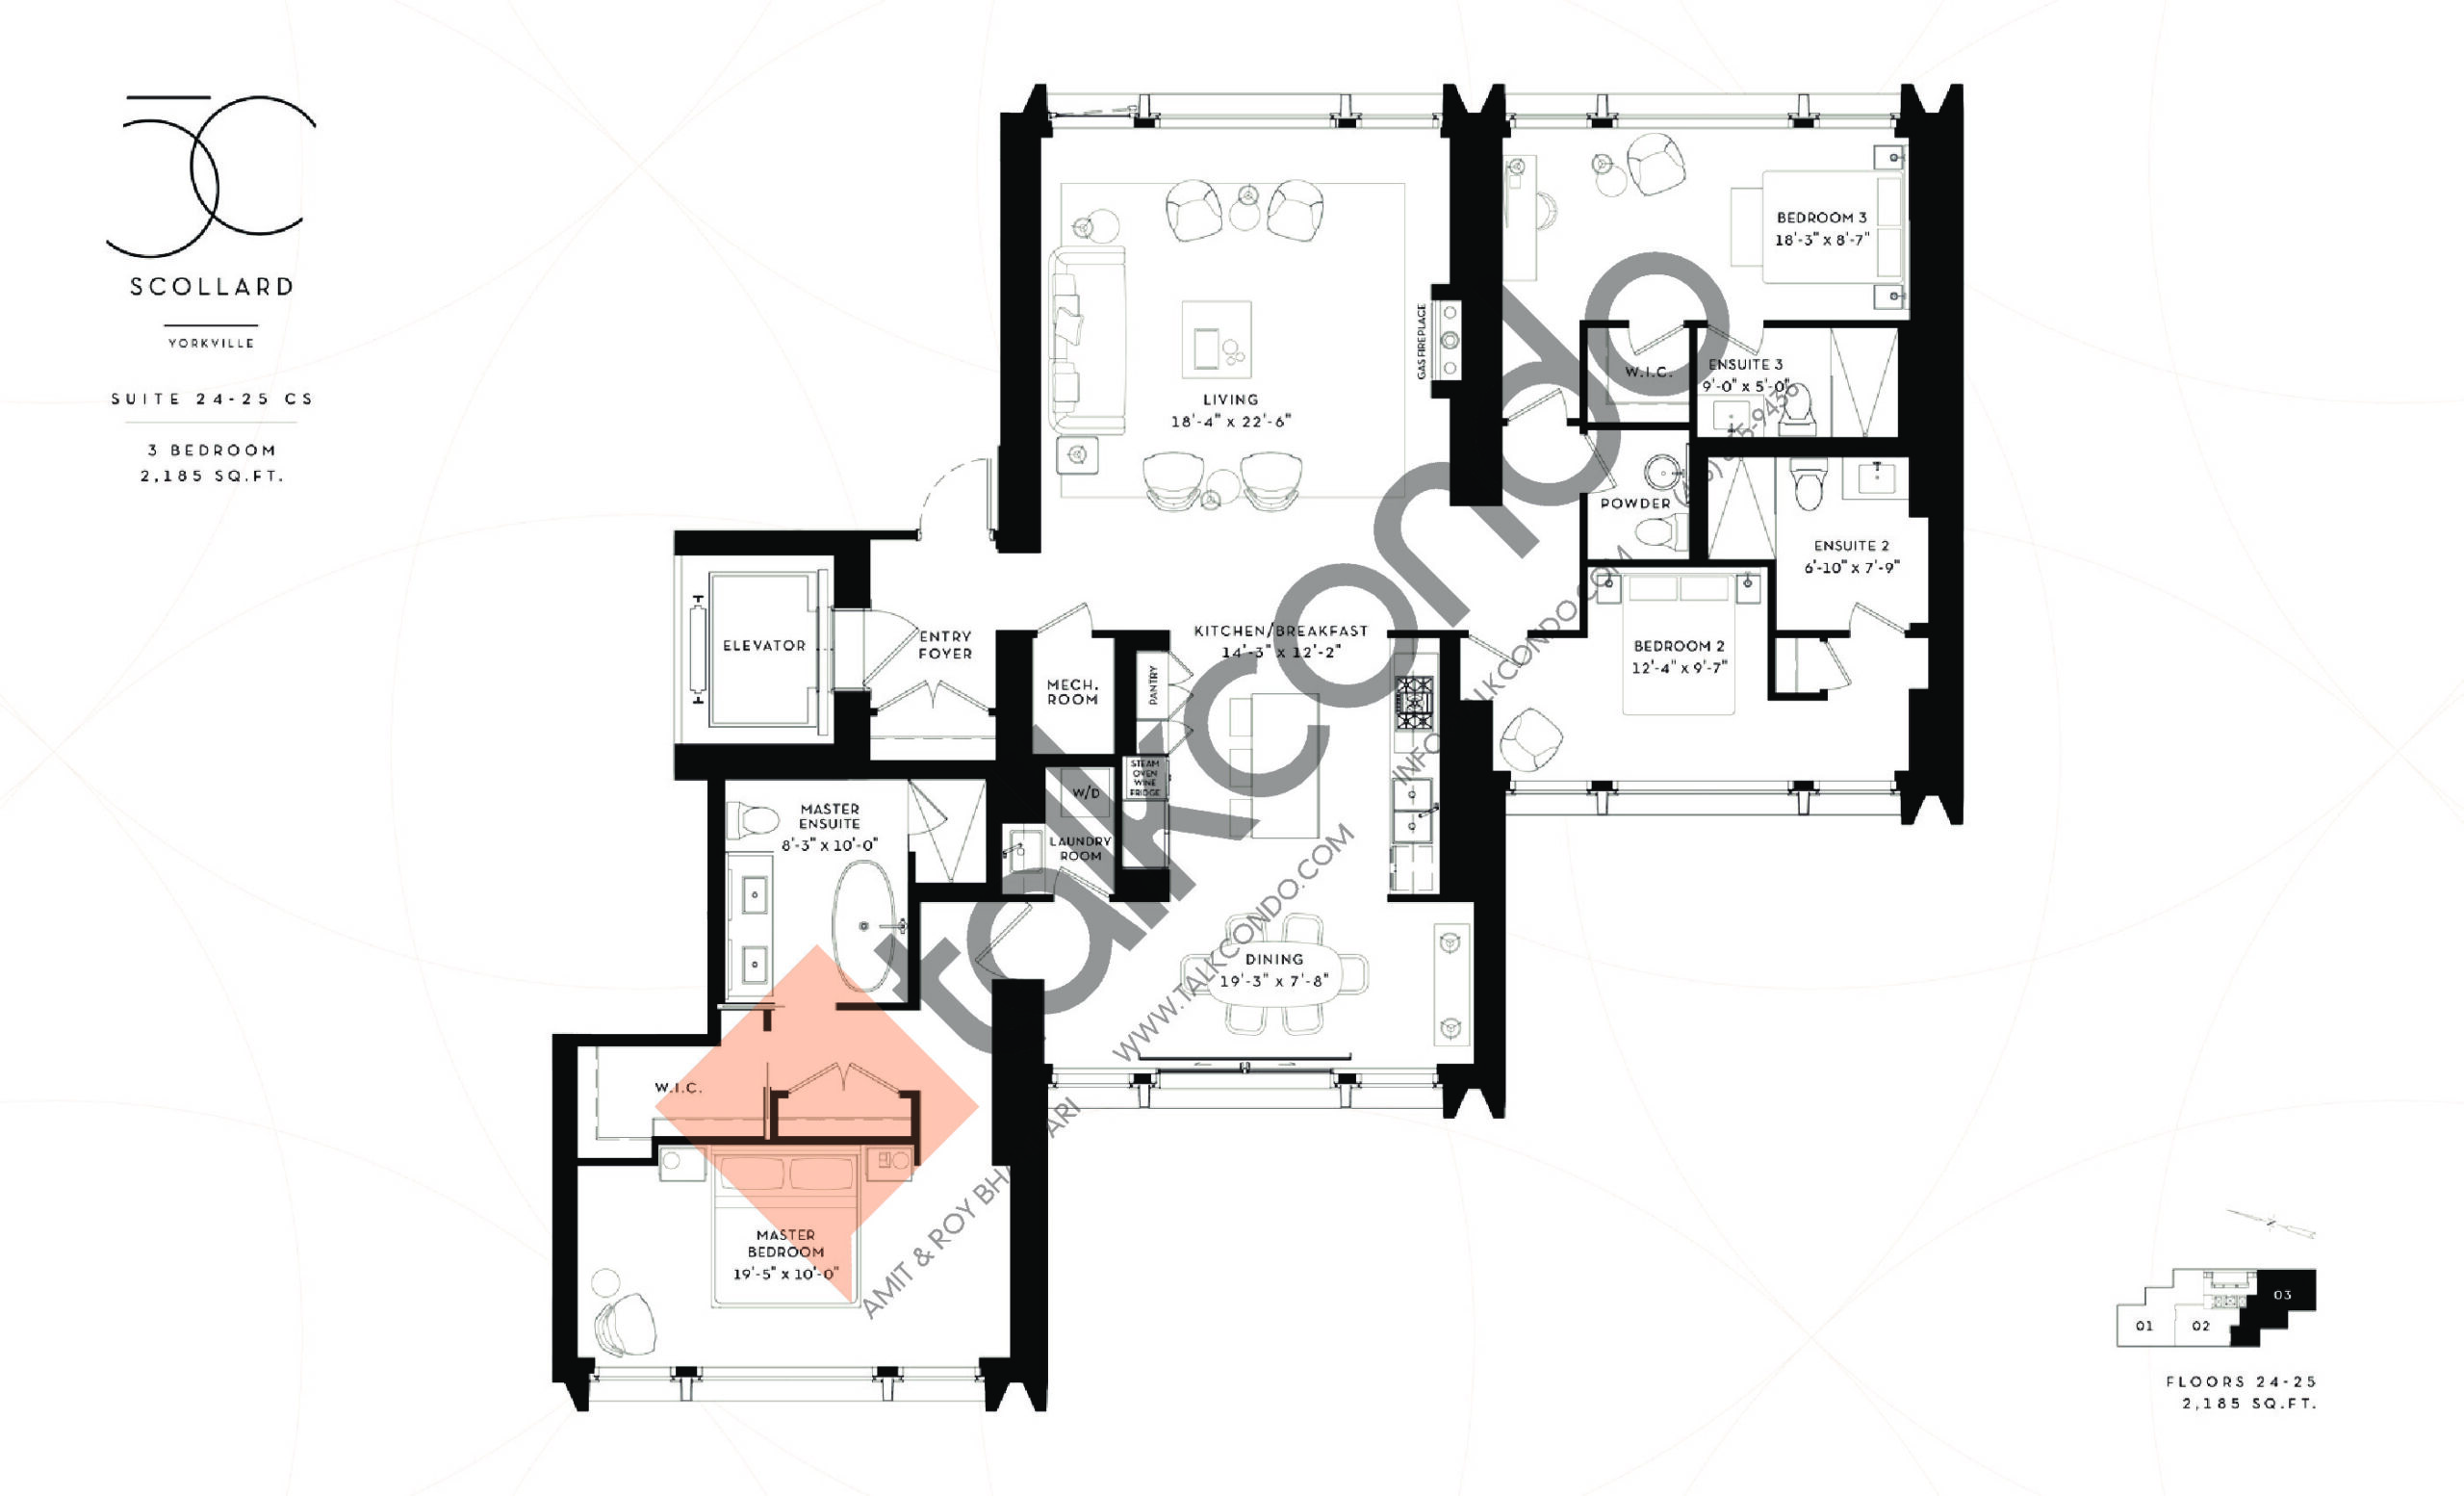 Suite 24-25 CS Floor Plan at Fifty Scollard Condos - 2185 sq.ft